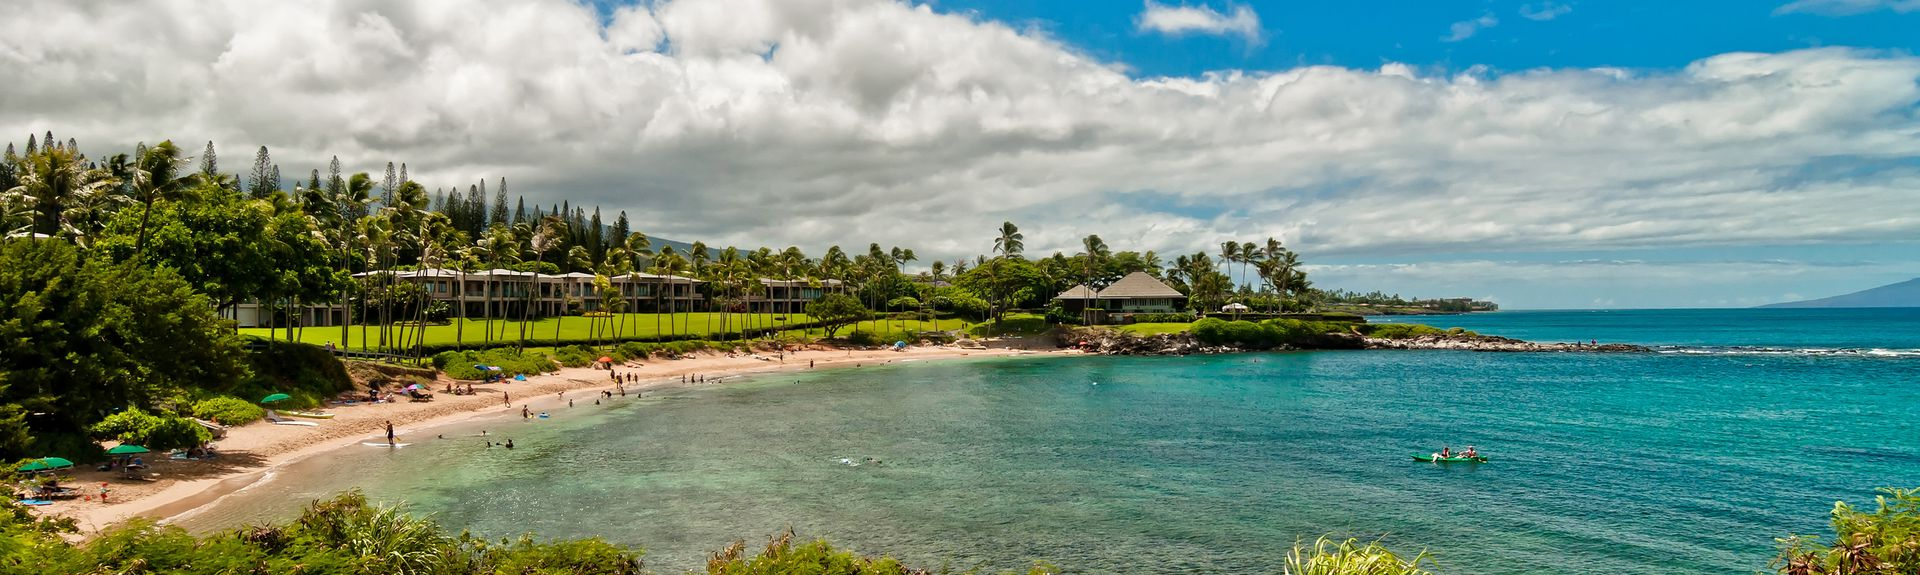 Kaanapali Beach, Lahaina, Hawaii, United States of America